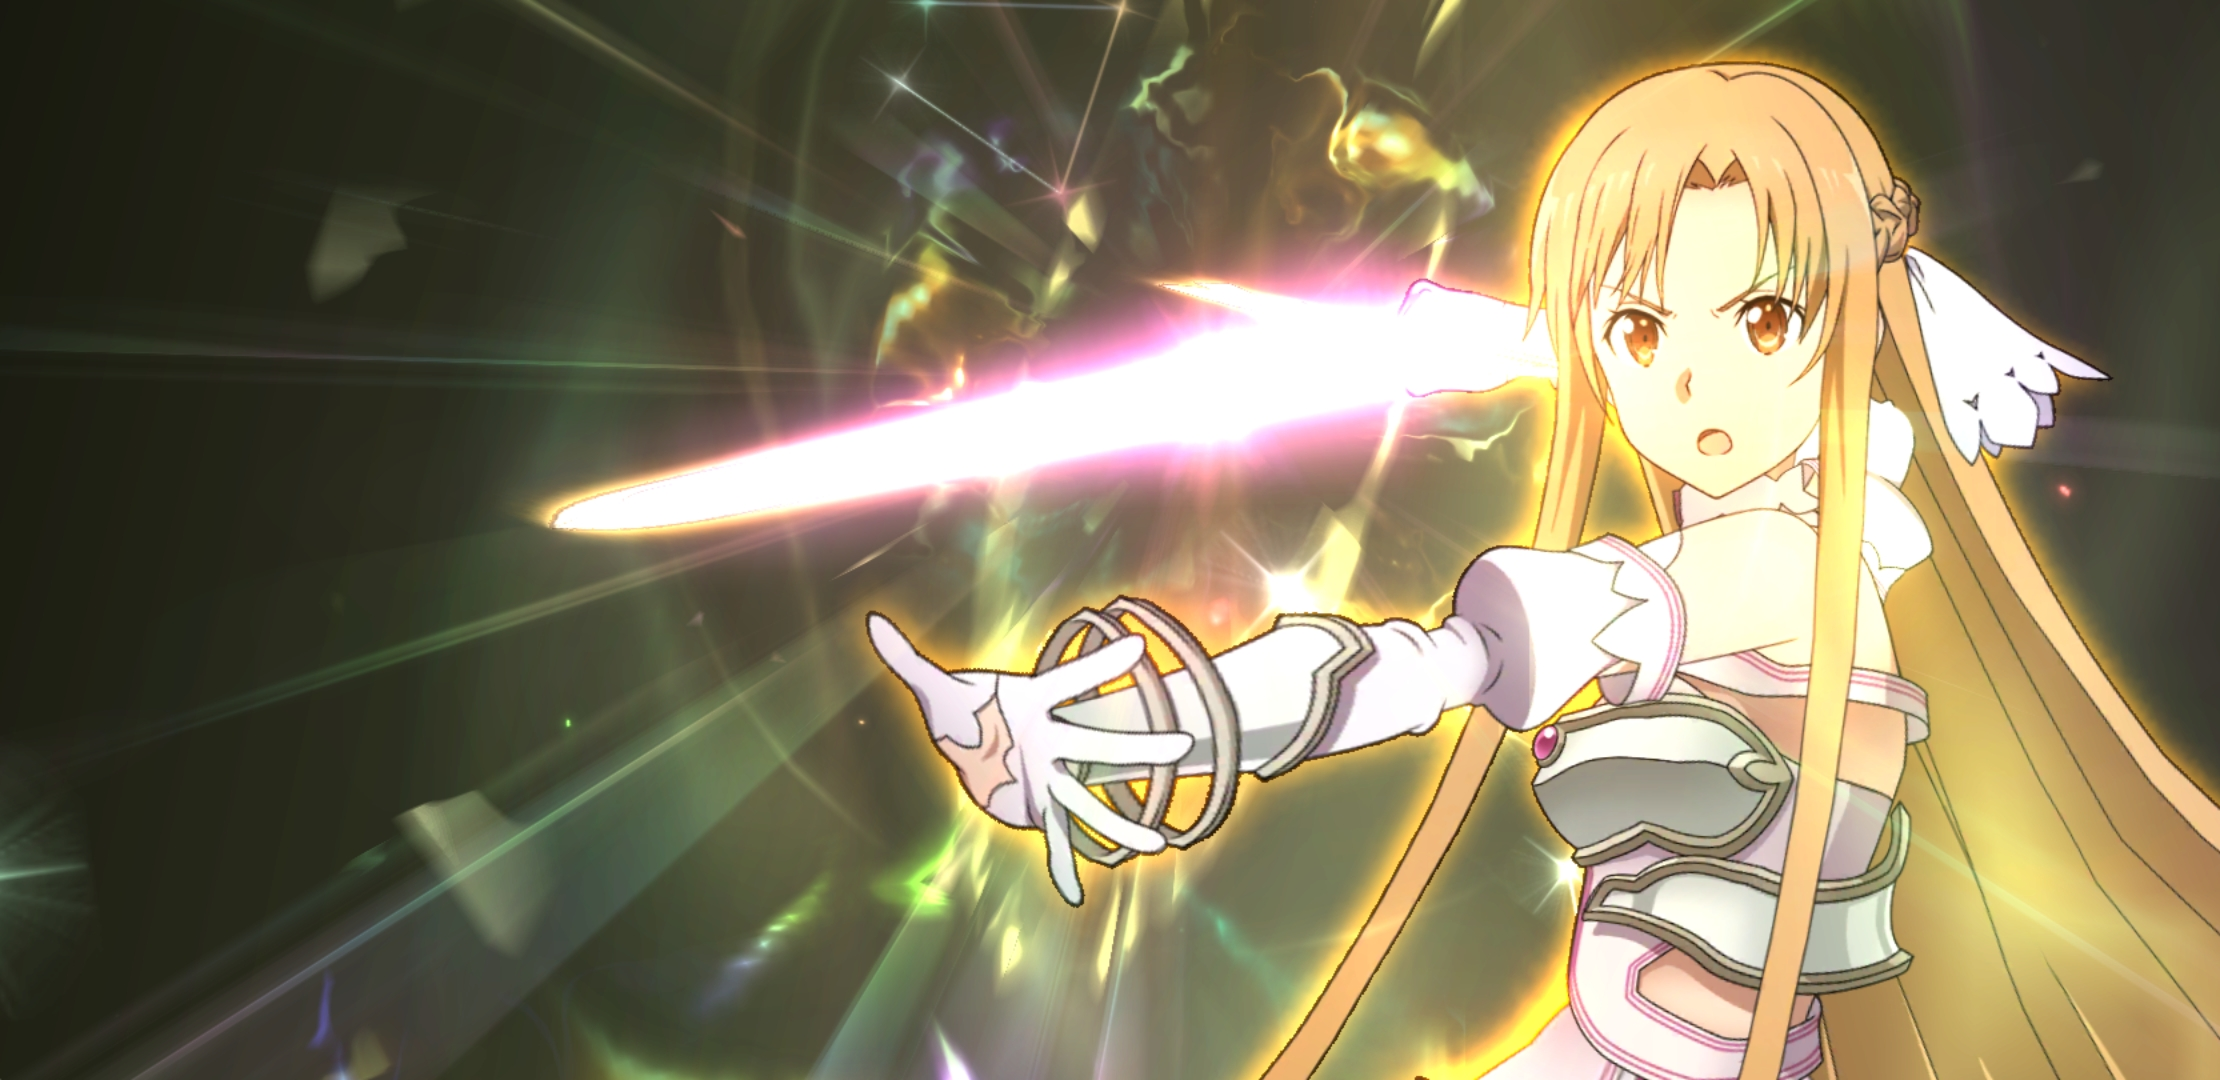 Sao Ars Asuna Stacia Screenshot By Dawnnolight On Deviantart